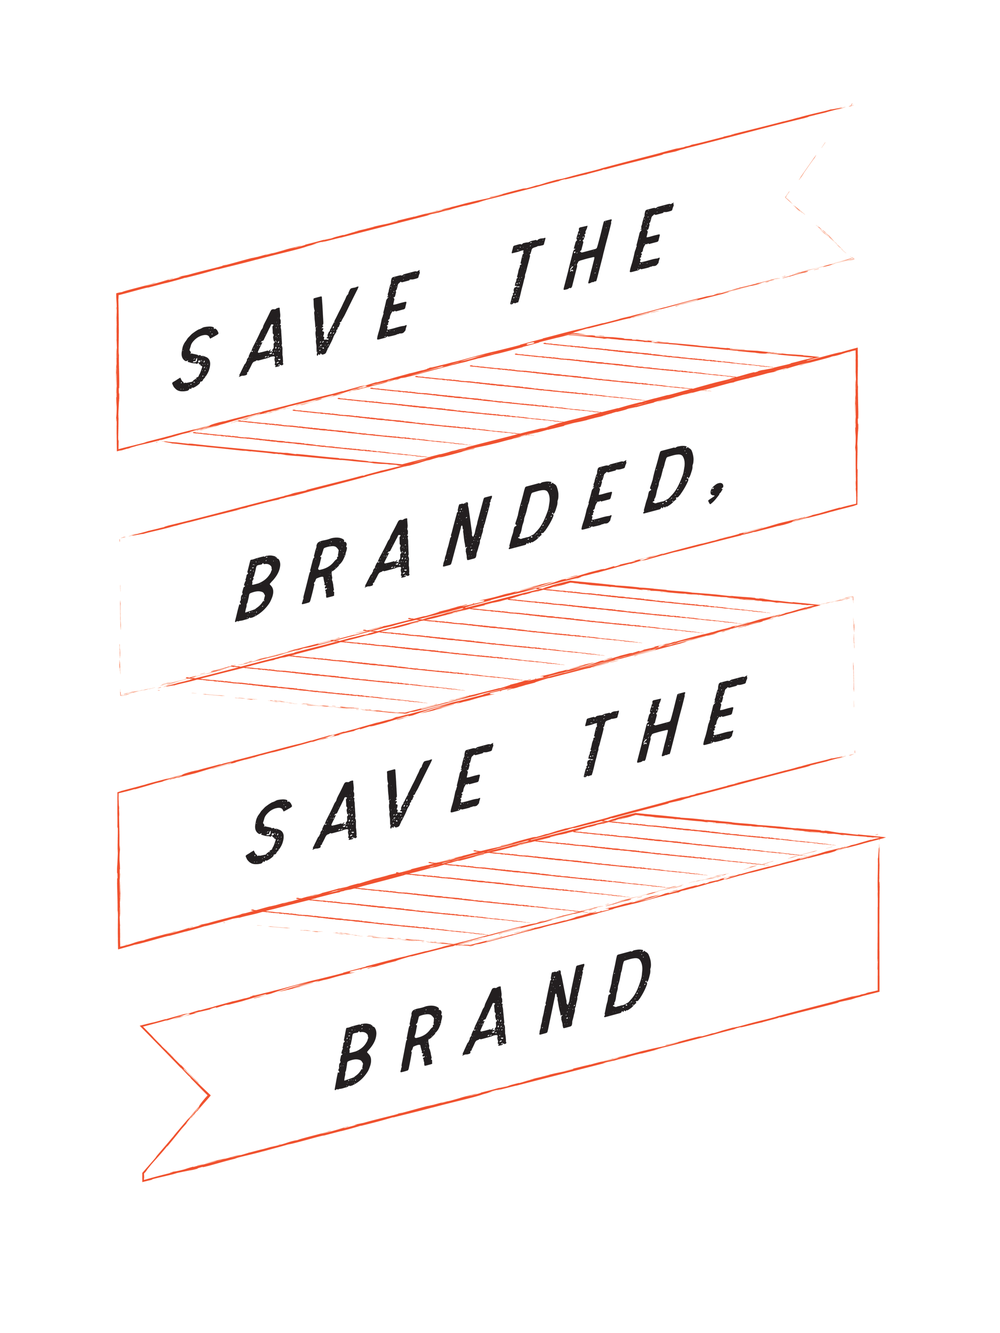 Save the branded - This ability to like something – to be branded – is being threatened by the very techniques we are using to do our branding, specifically on digital. The cacophony of update dings, @ reply buzzes and pop-up ads have turned the attention spans of the tech savvy into, well, mush. And no matter how hard you try to engage with mush, there is little return.